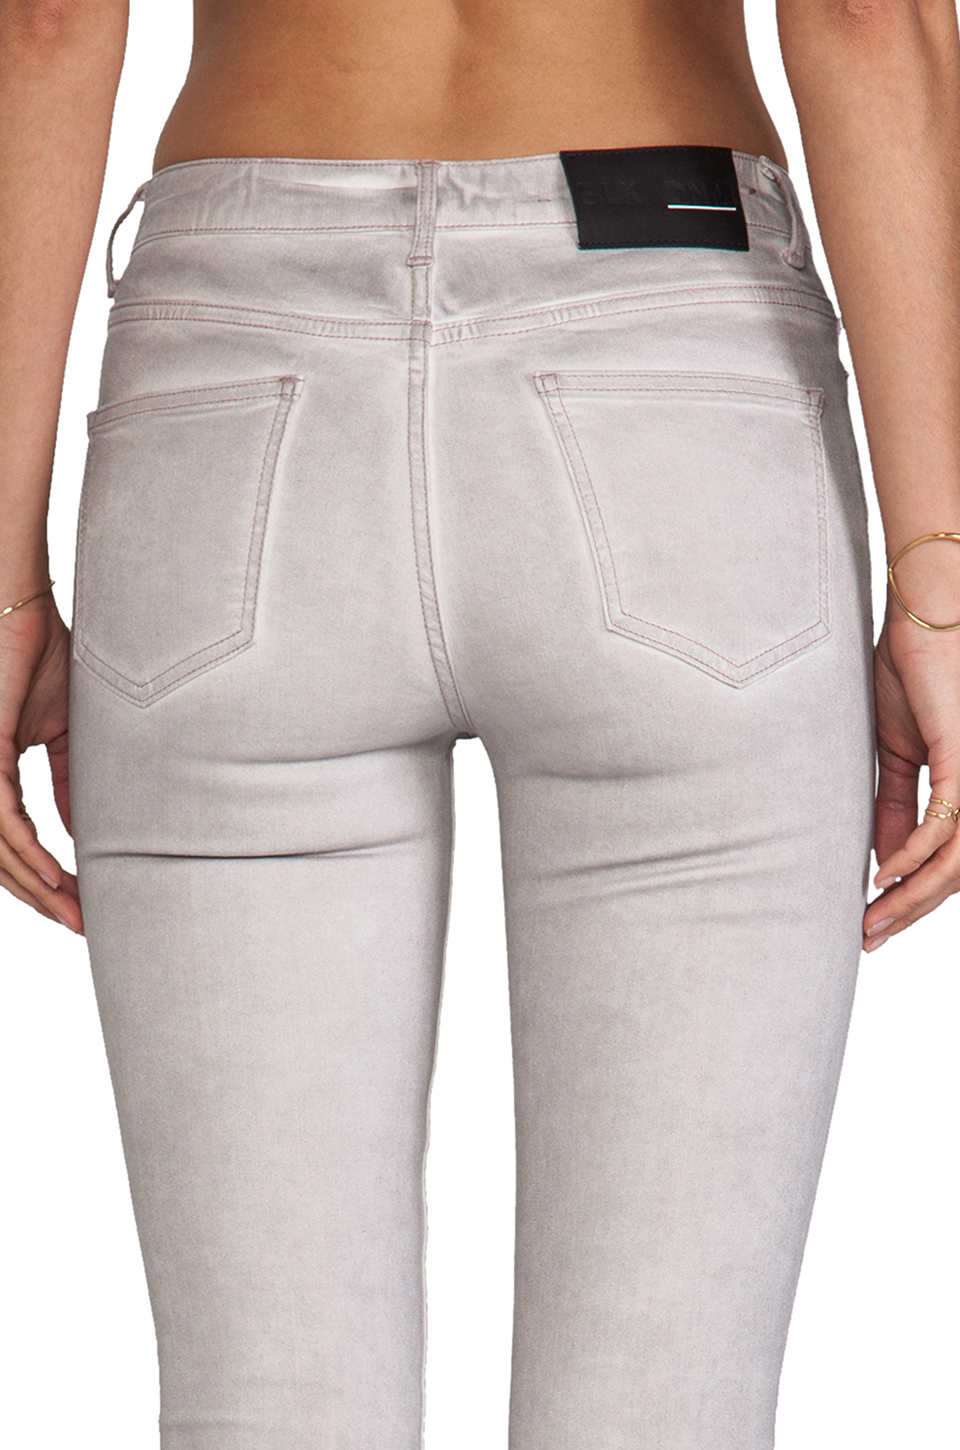 BLK DNM Jeans 4 in Dusty Pink